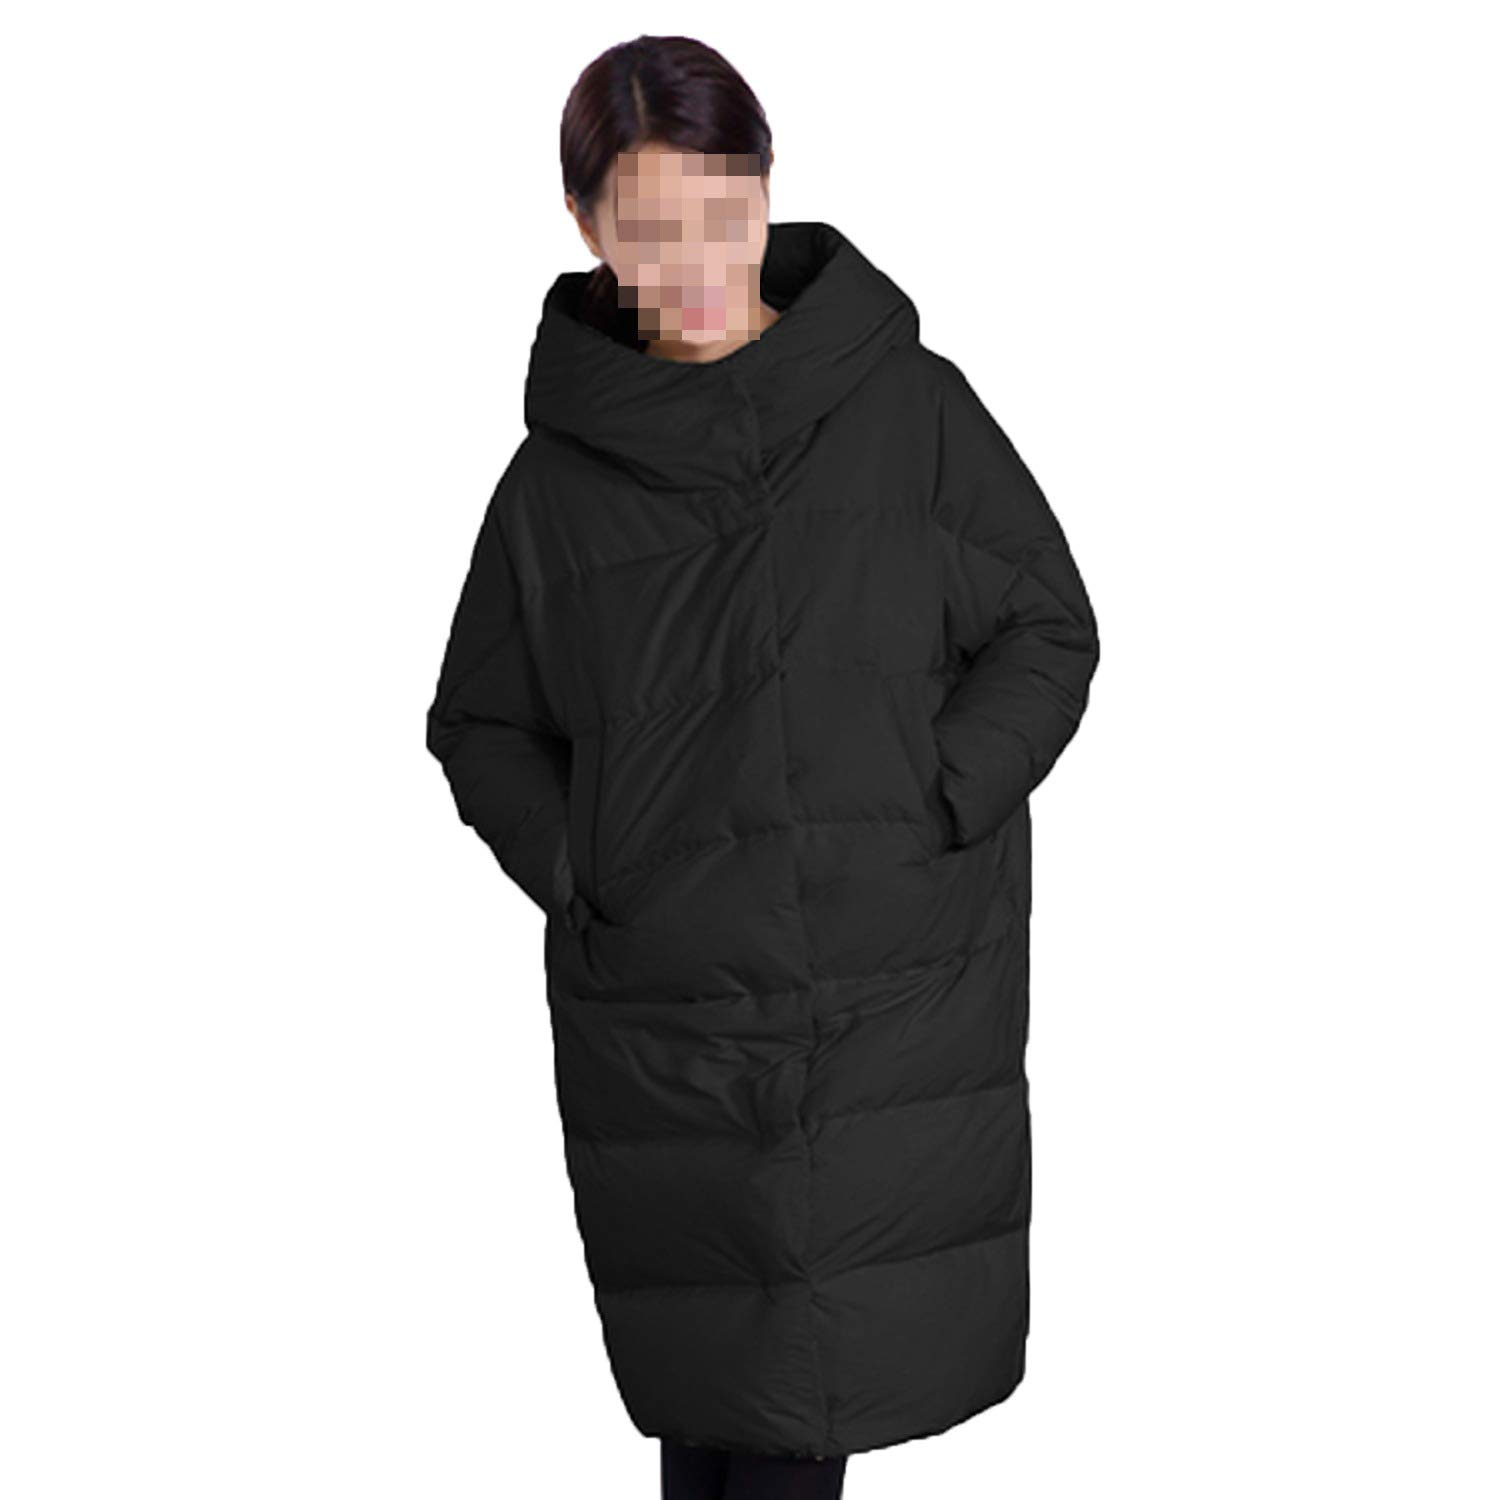 Black Winter Jacket Women Long Thick Warm Hooded Women's Down Jacket Windproof Loose Coat Outwears